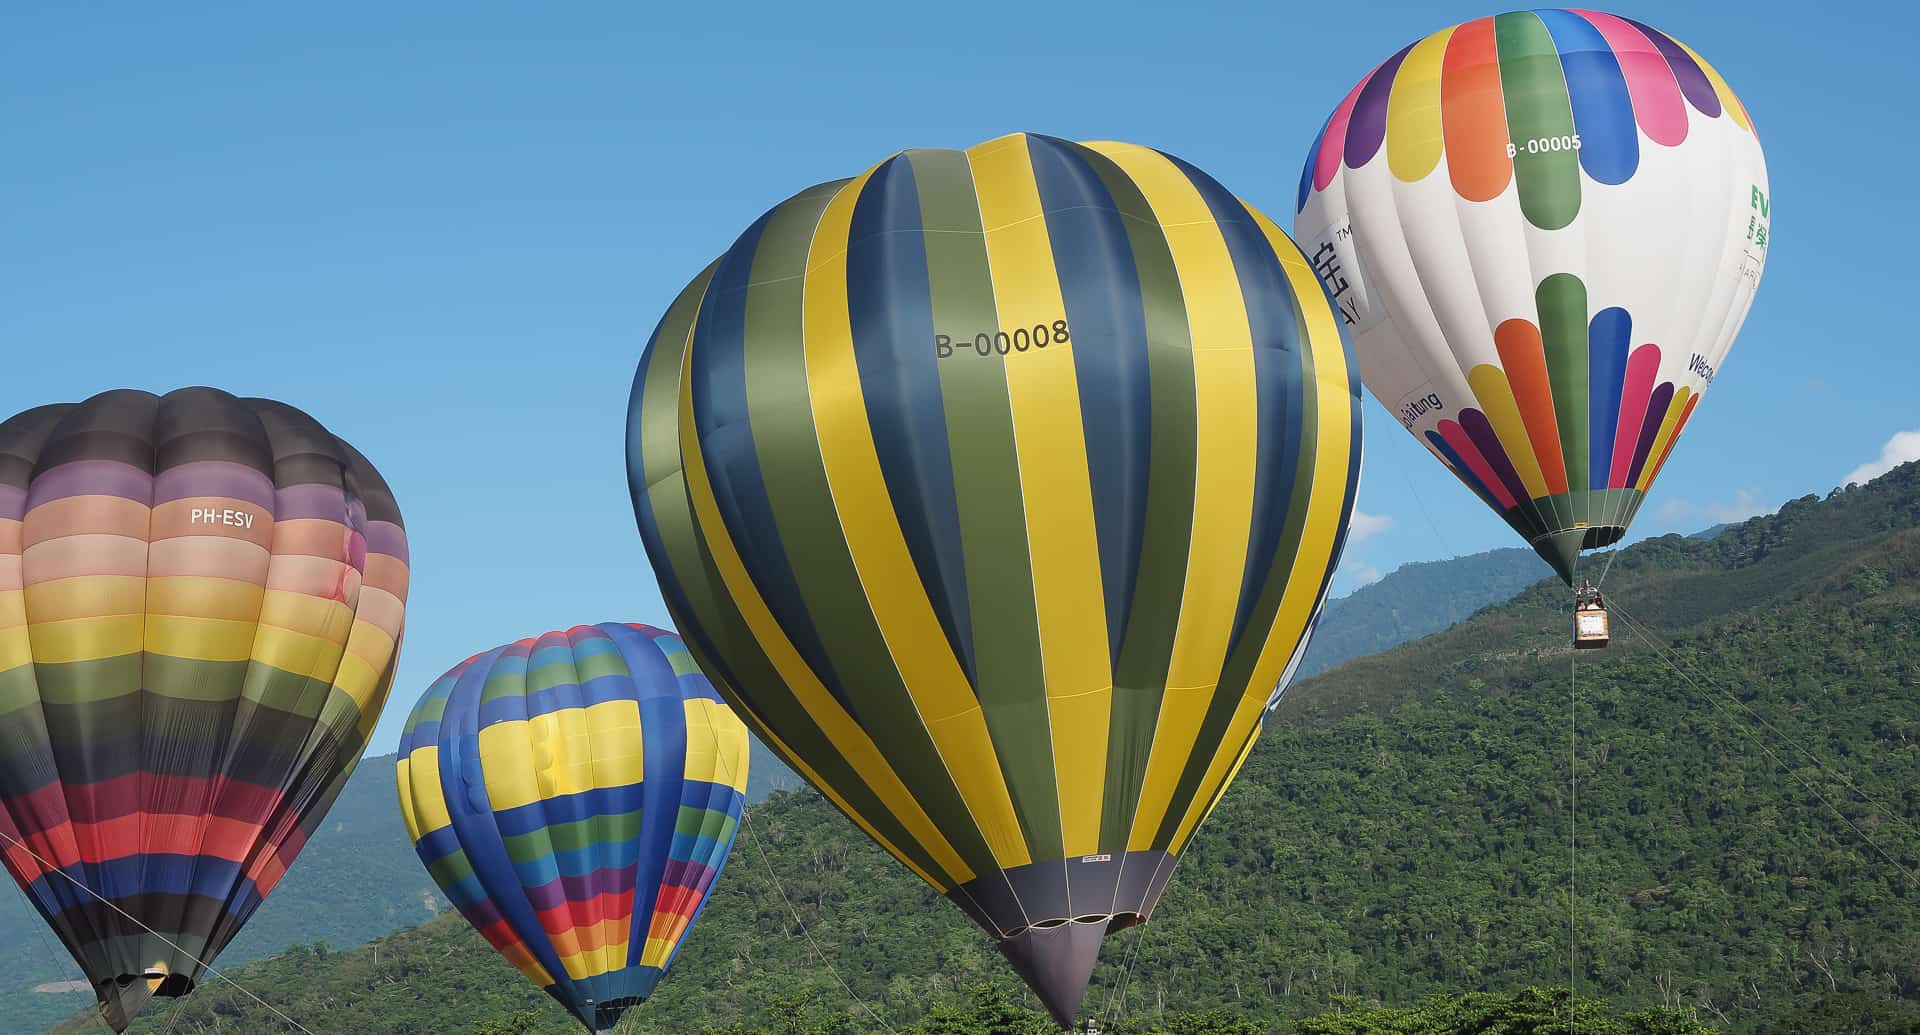 Luye Taiwan and the Taitung Hot Air Balloon Festival